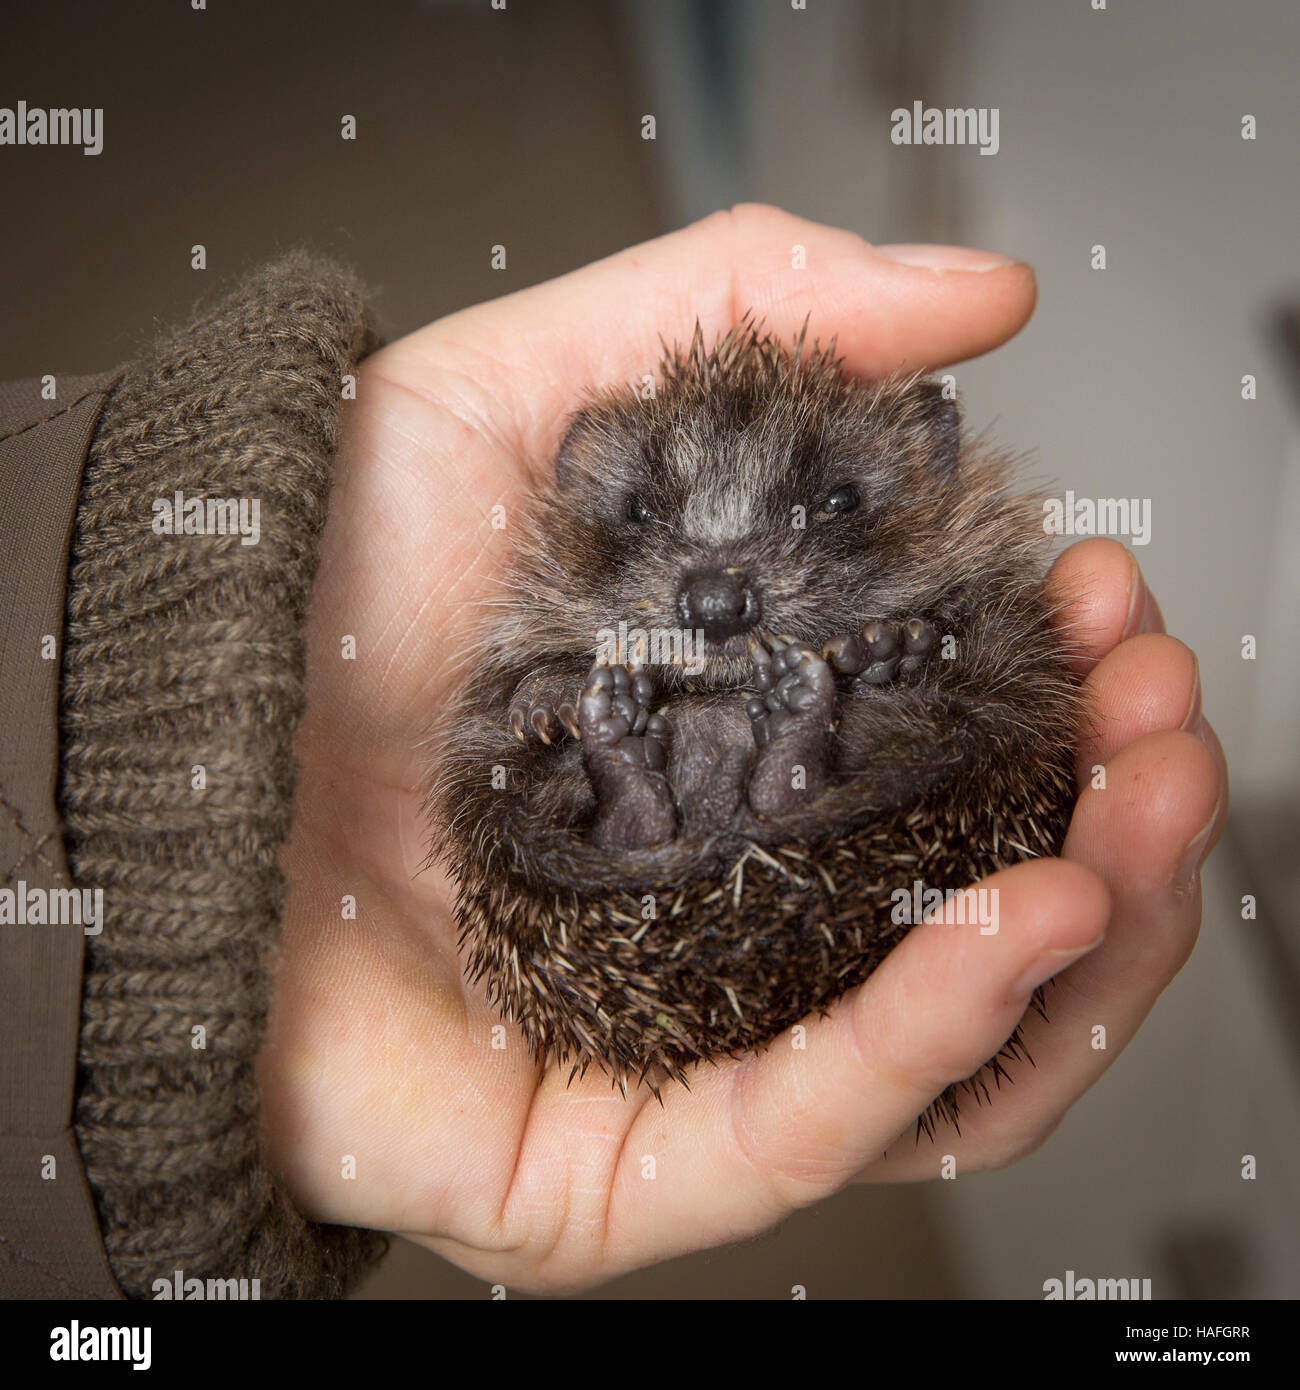 Curled up baby hedgehog being held in a hand to show its face and feet - Stock Image